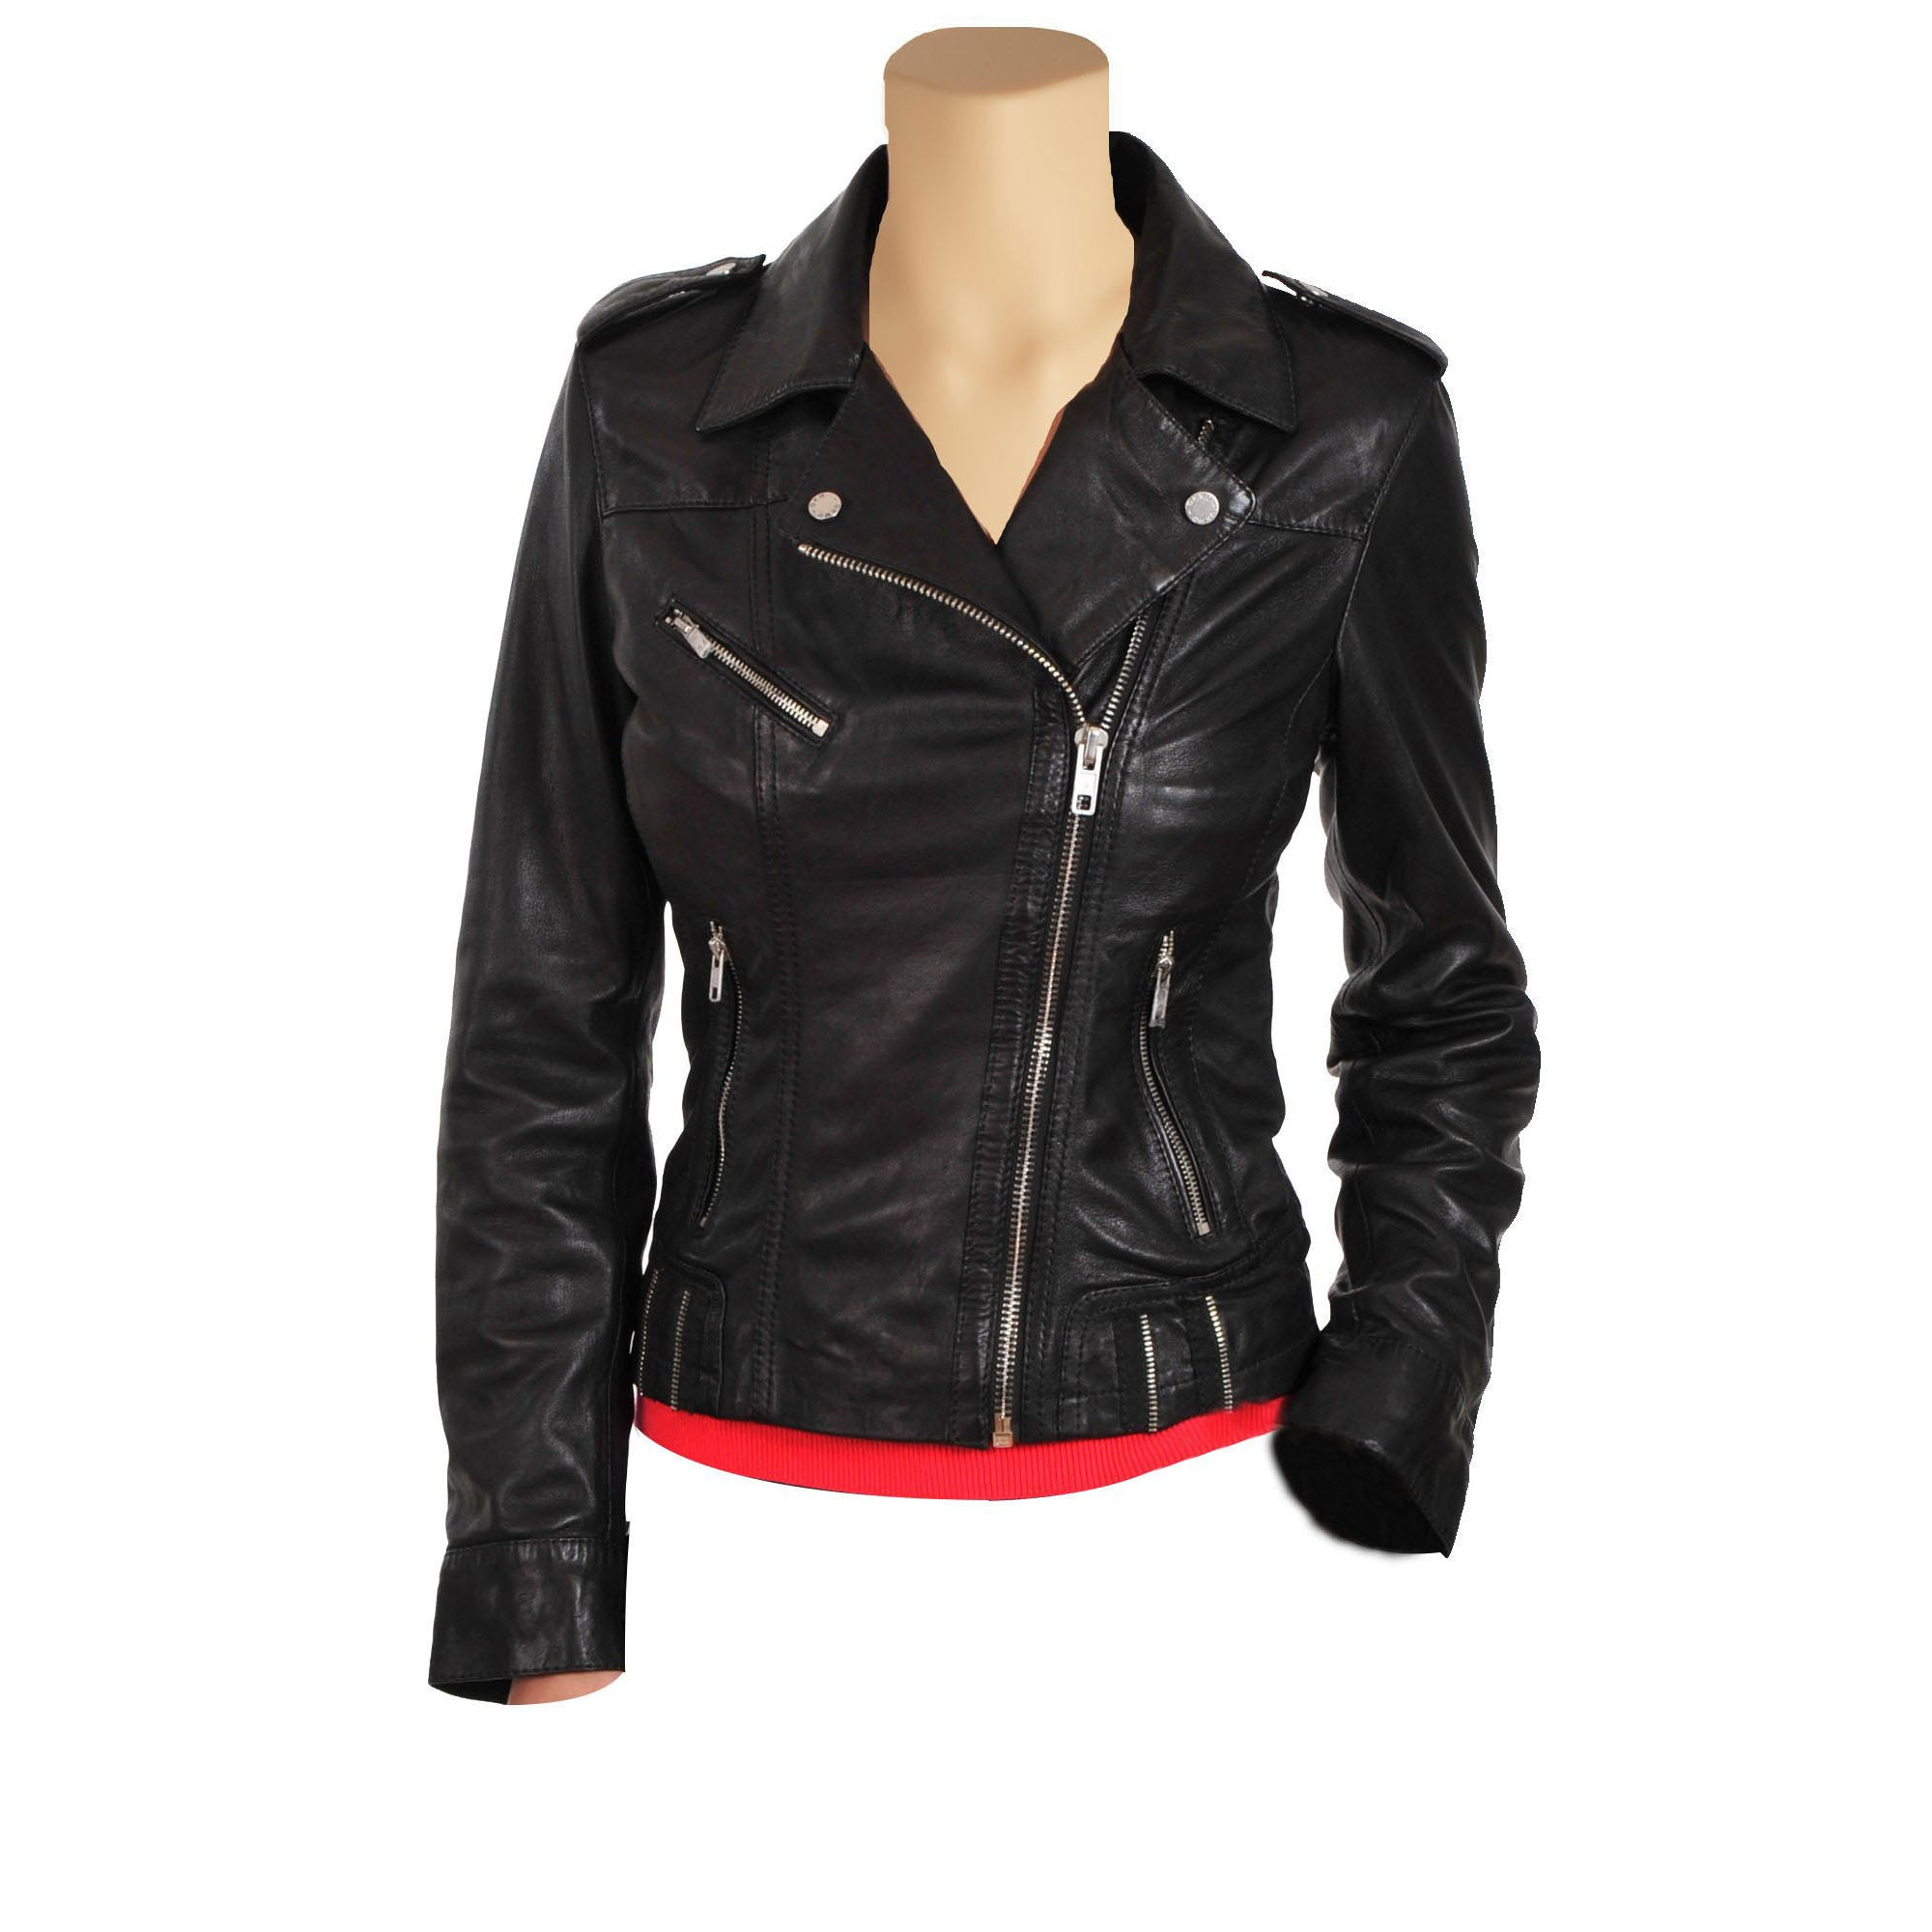 Women's classic biker style leather jacket - Lusso Leather - 1